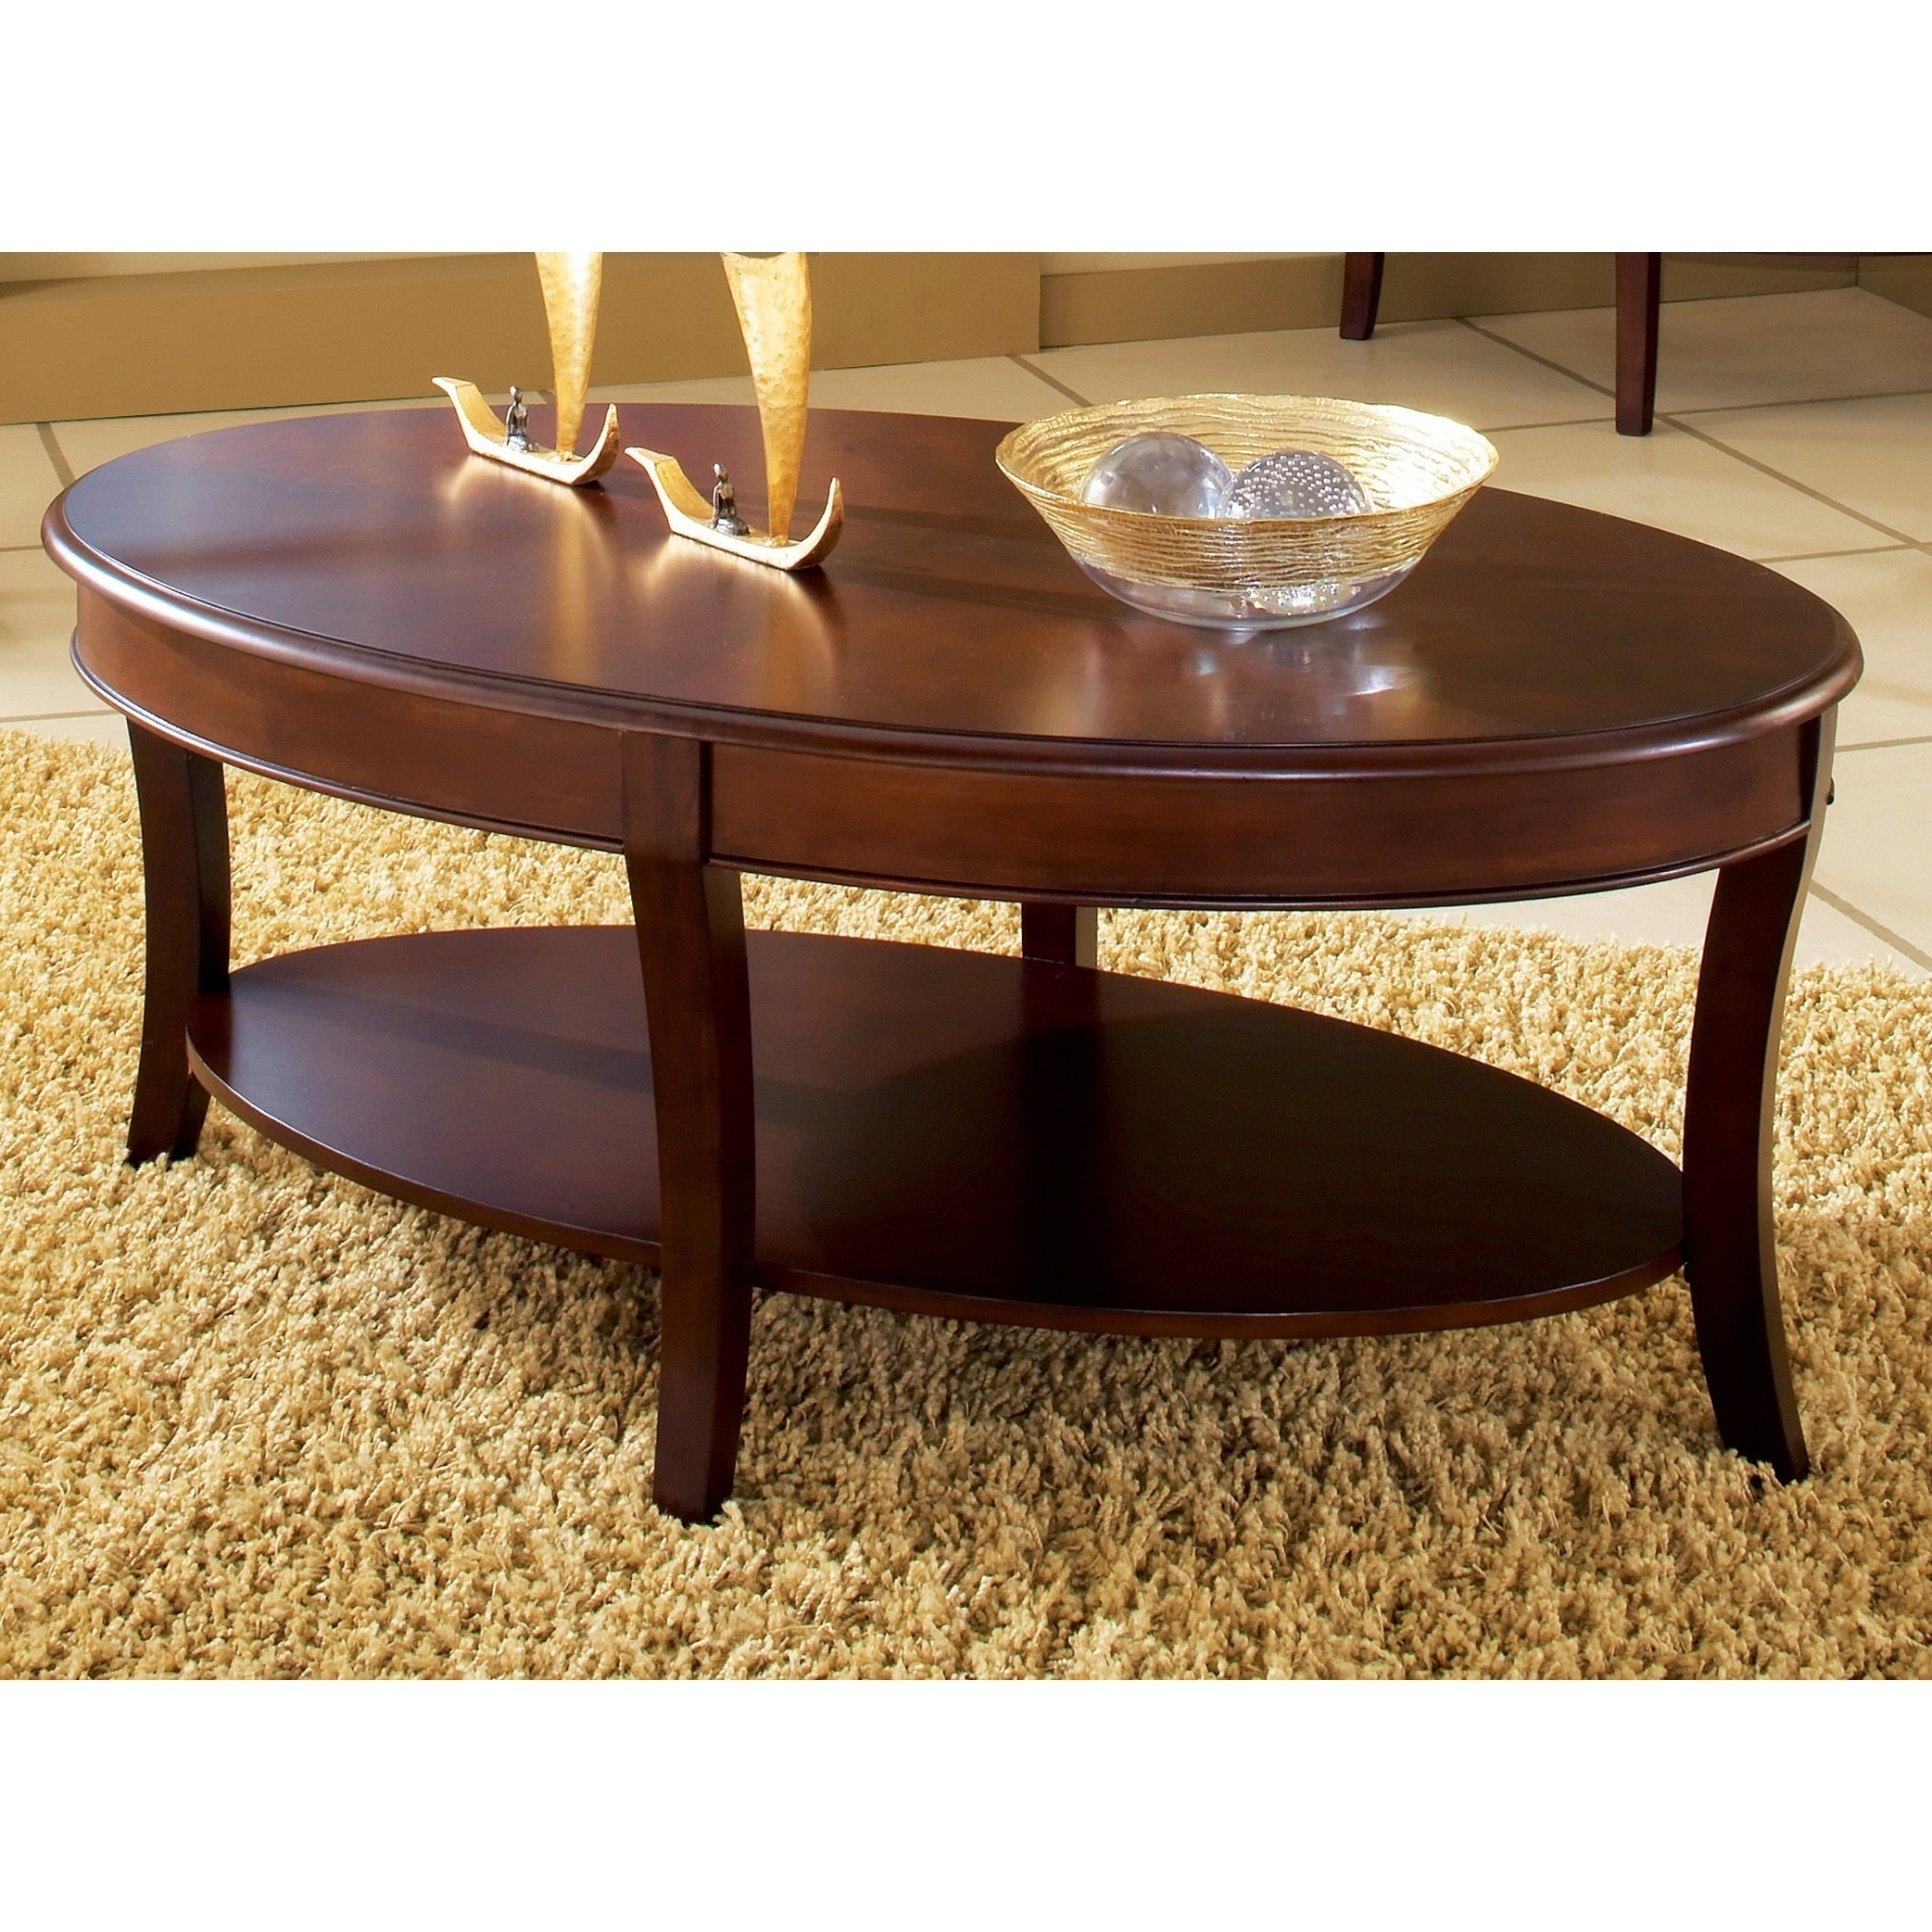 Copper Grove Coffee Tables – All About Coffee Beans Pertaining To Current Copper Grove Lantana Coffee Tables (View 4 of 20)